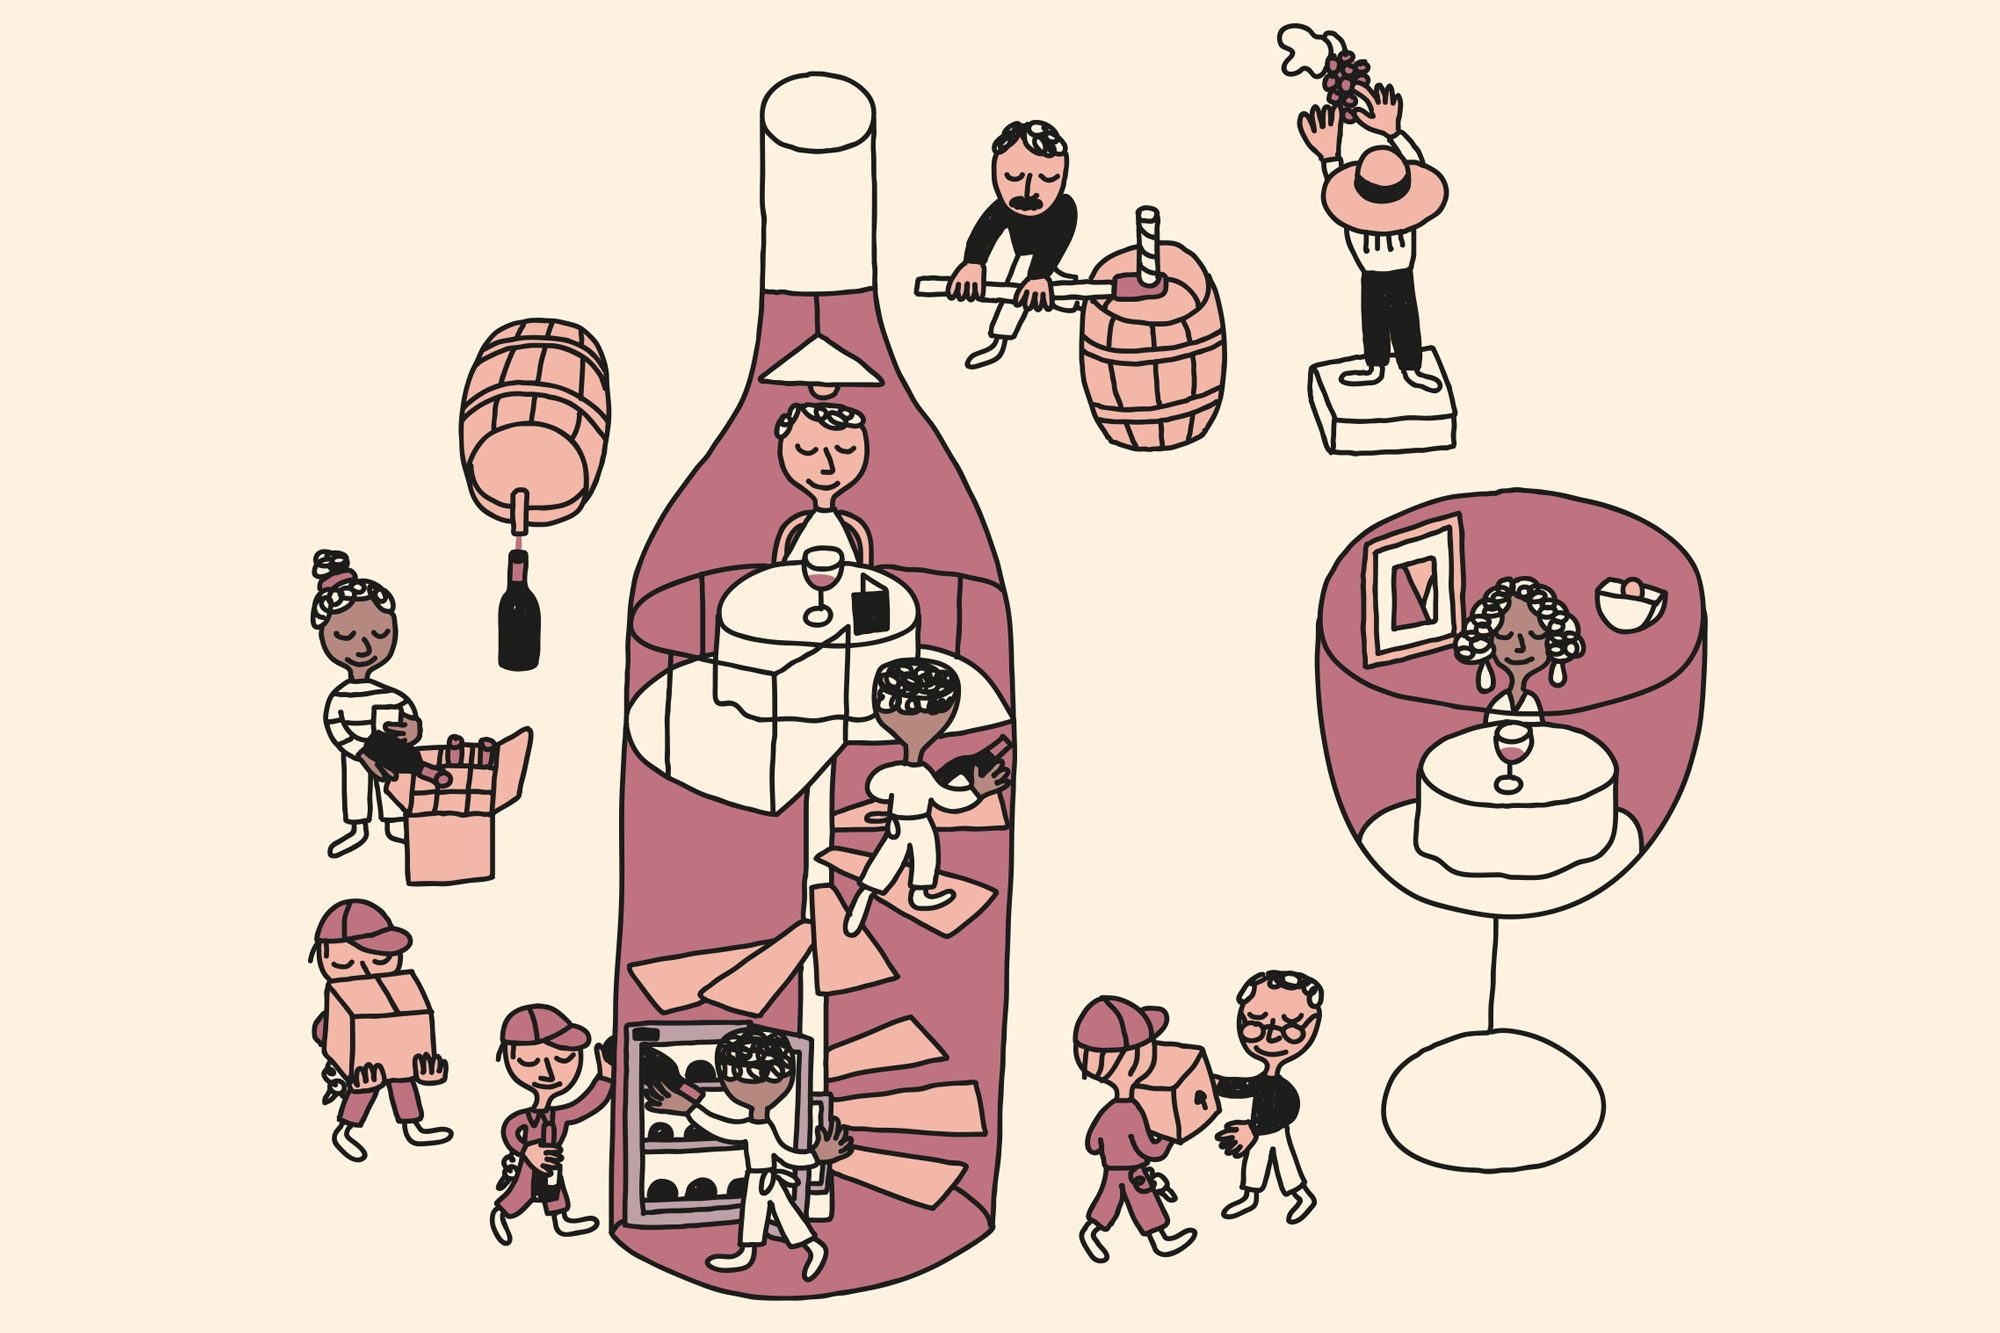 illustration of people working in and around a wine bottle and glass